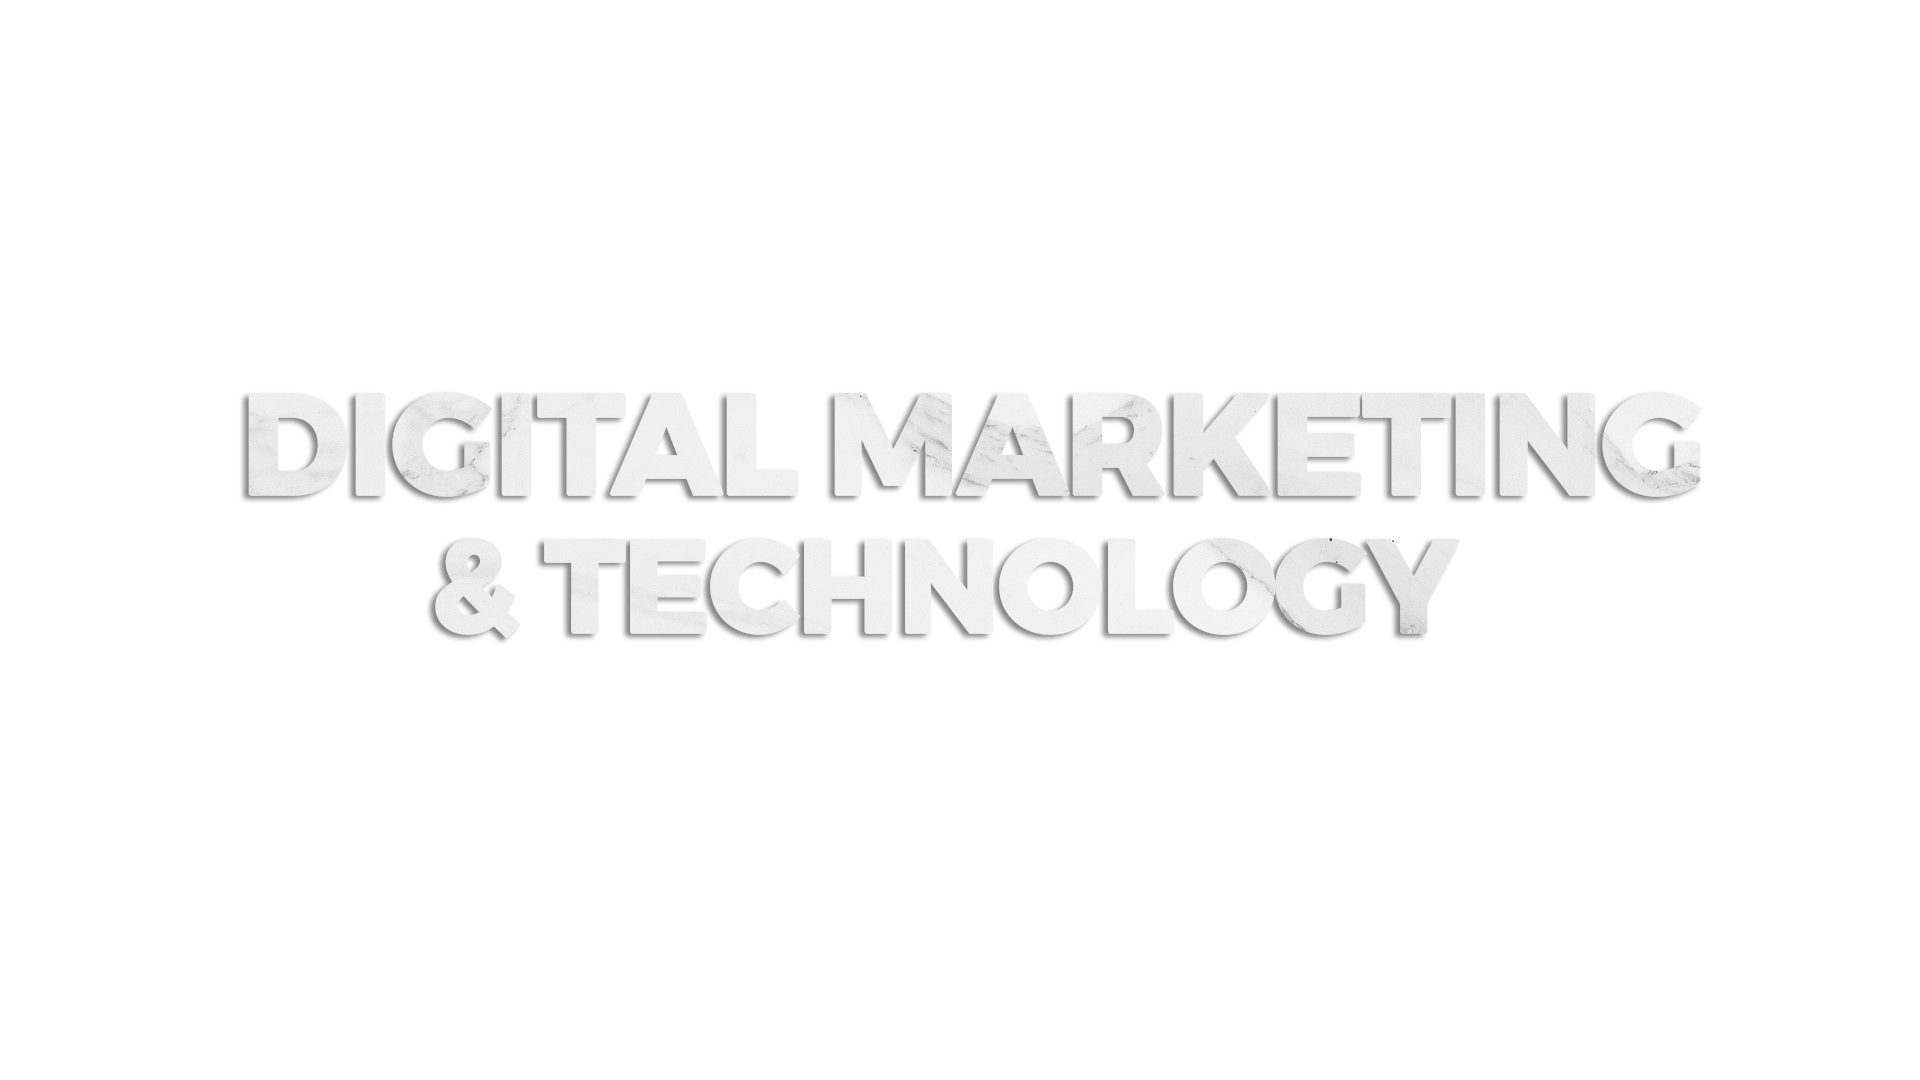 Digital marketing and technology